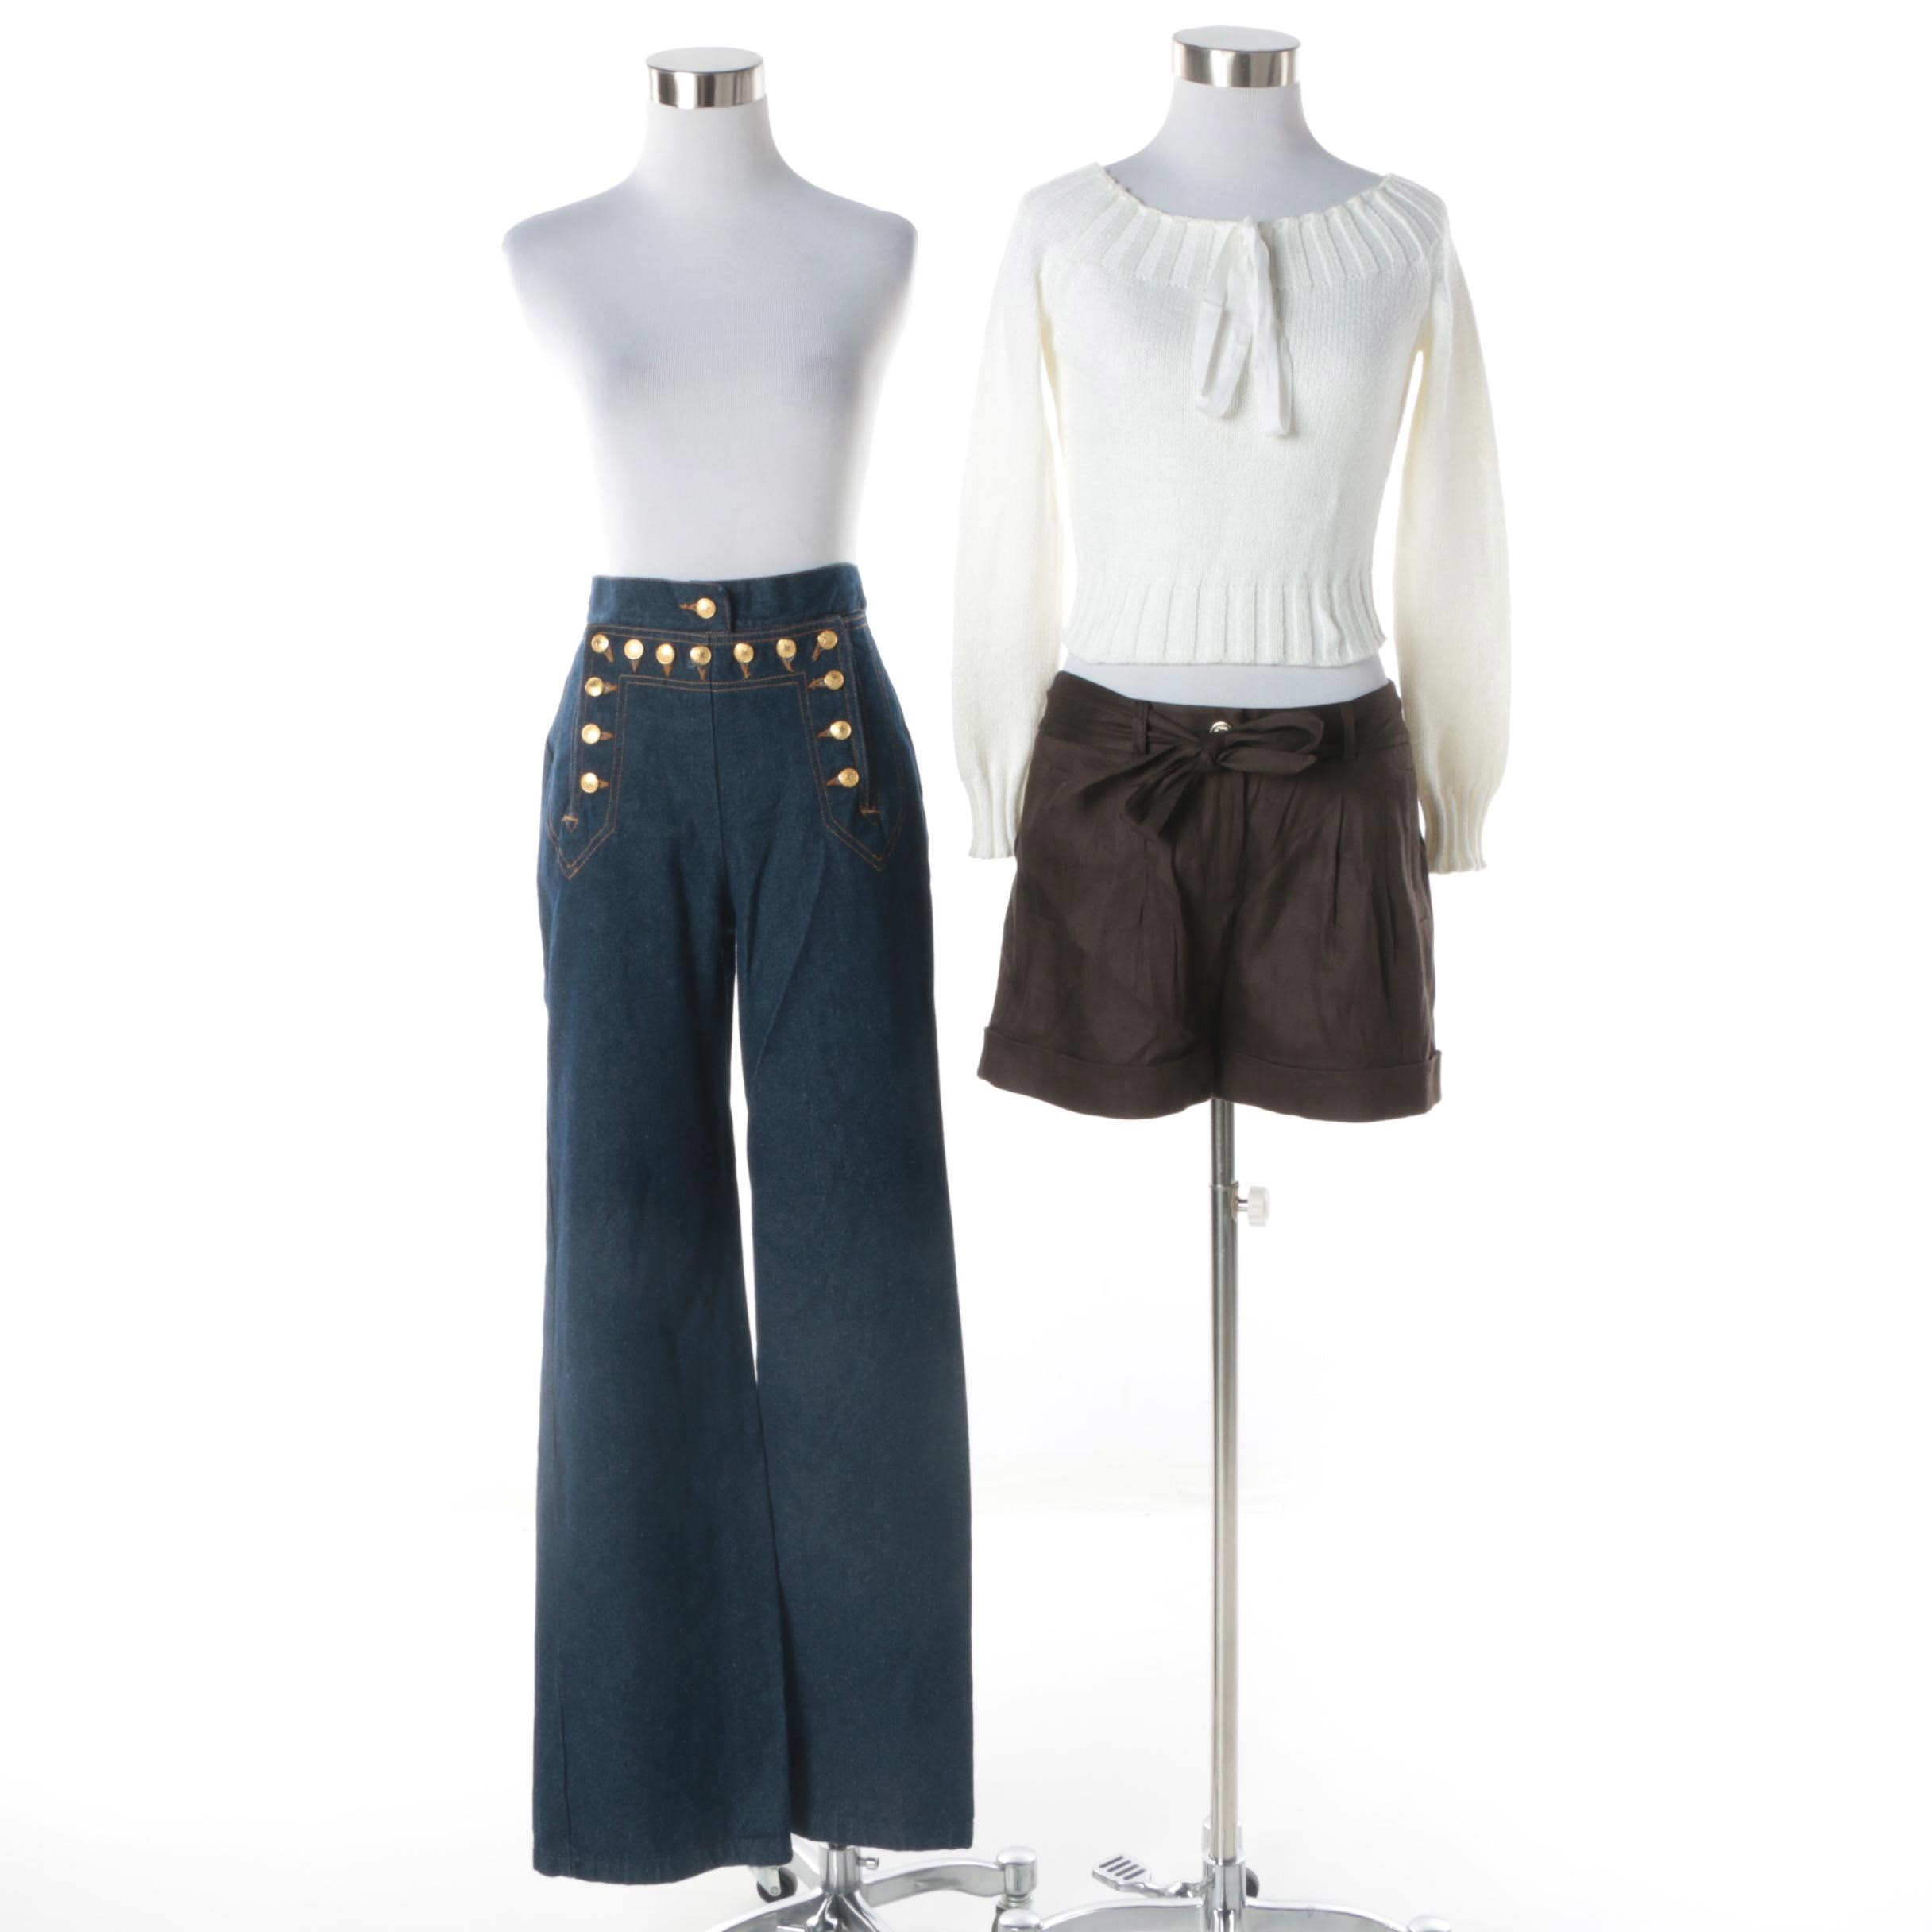 Moschino Cheap and Chic Sweater, Isaac Mizrahi Jeans and Kate Spade Shorts